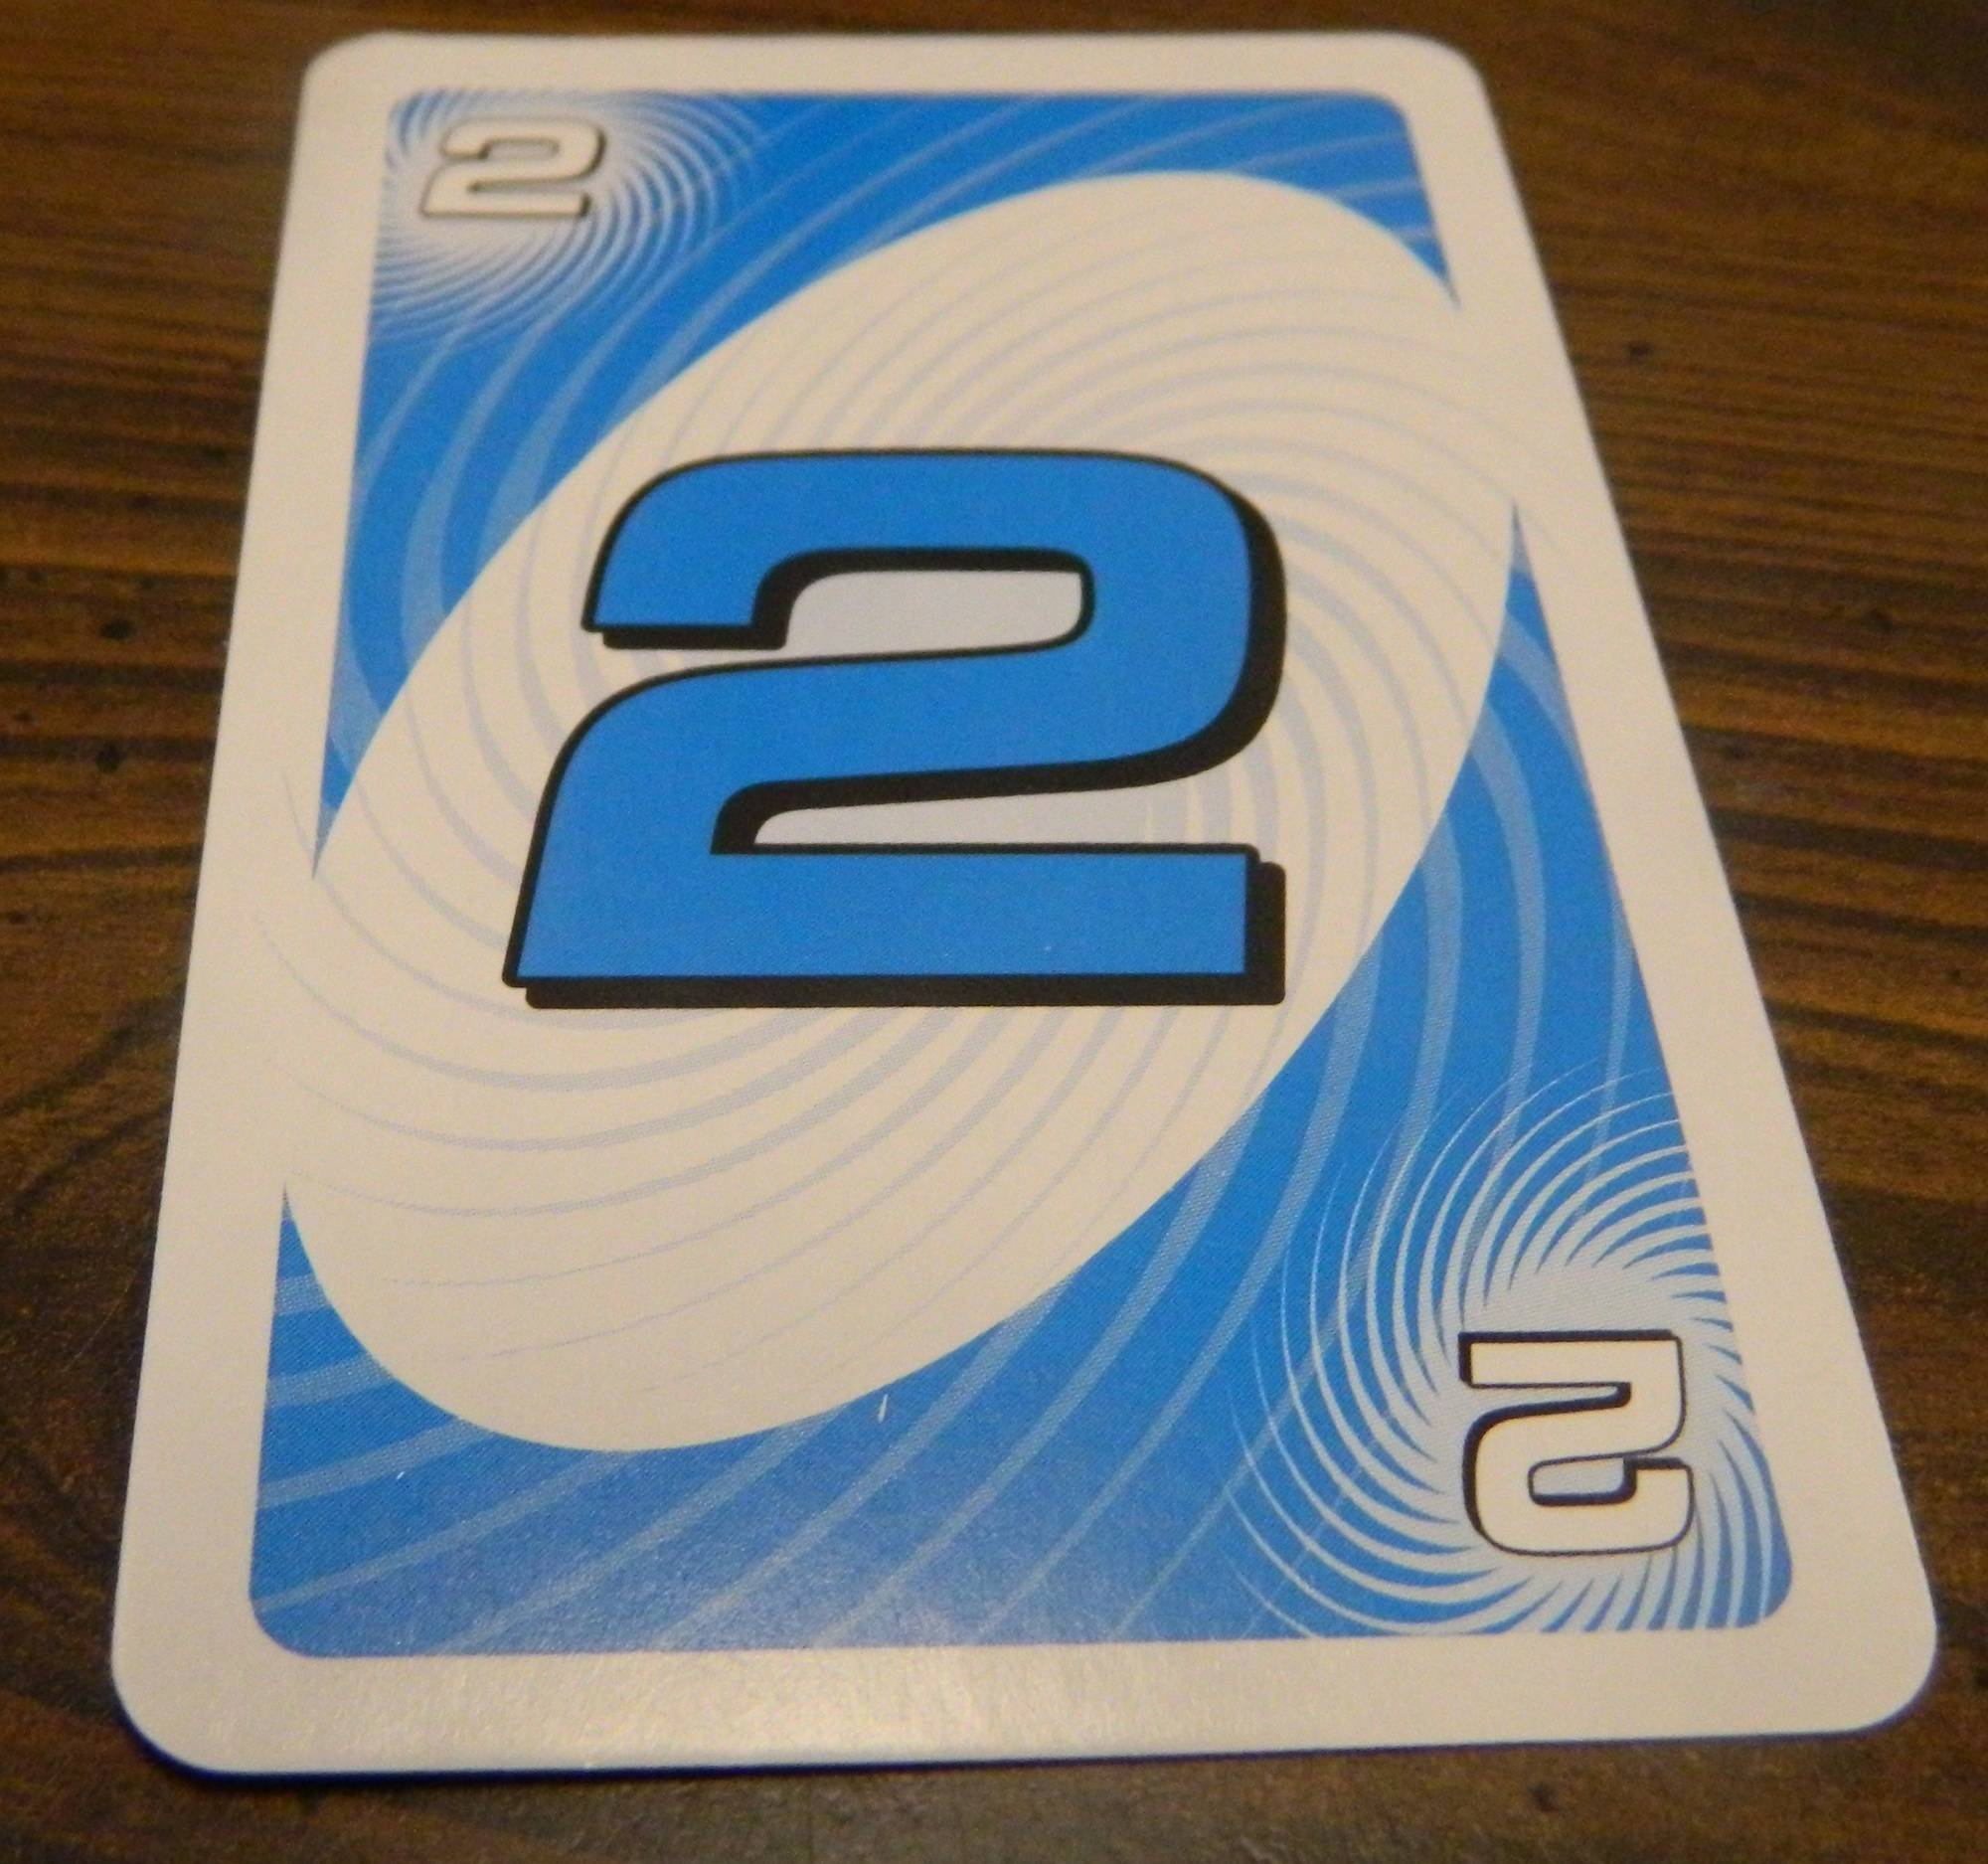 uno spin card game review and rules geeky hobbies rh geekyhobbies com Uno Game Uno Spin Cards Meaning